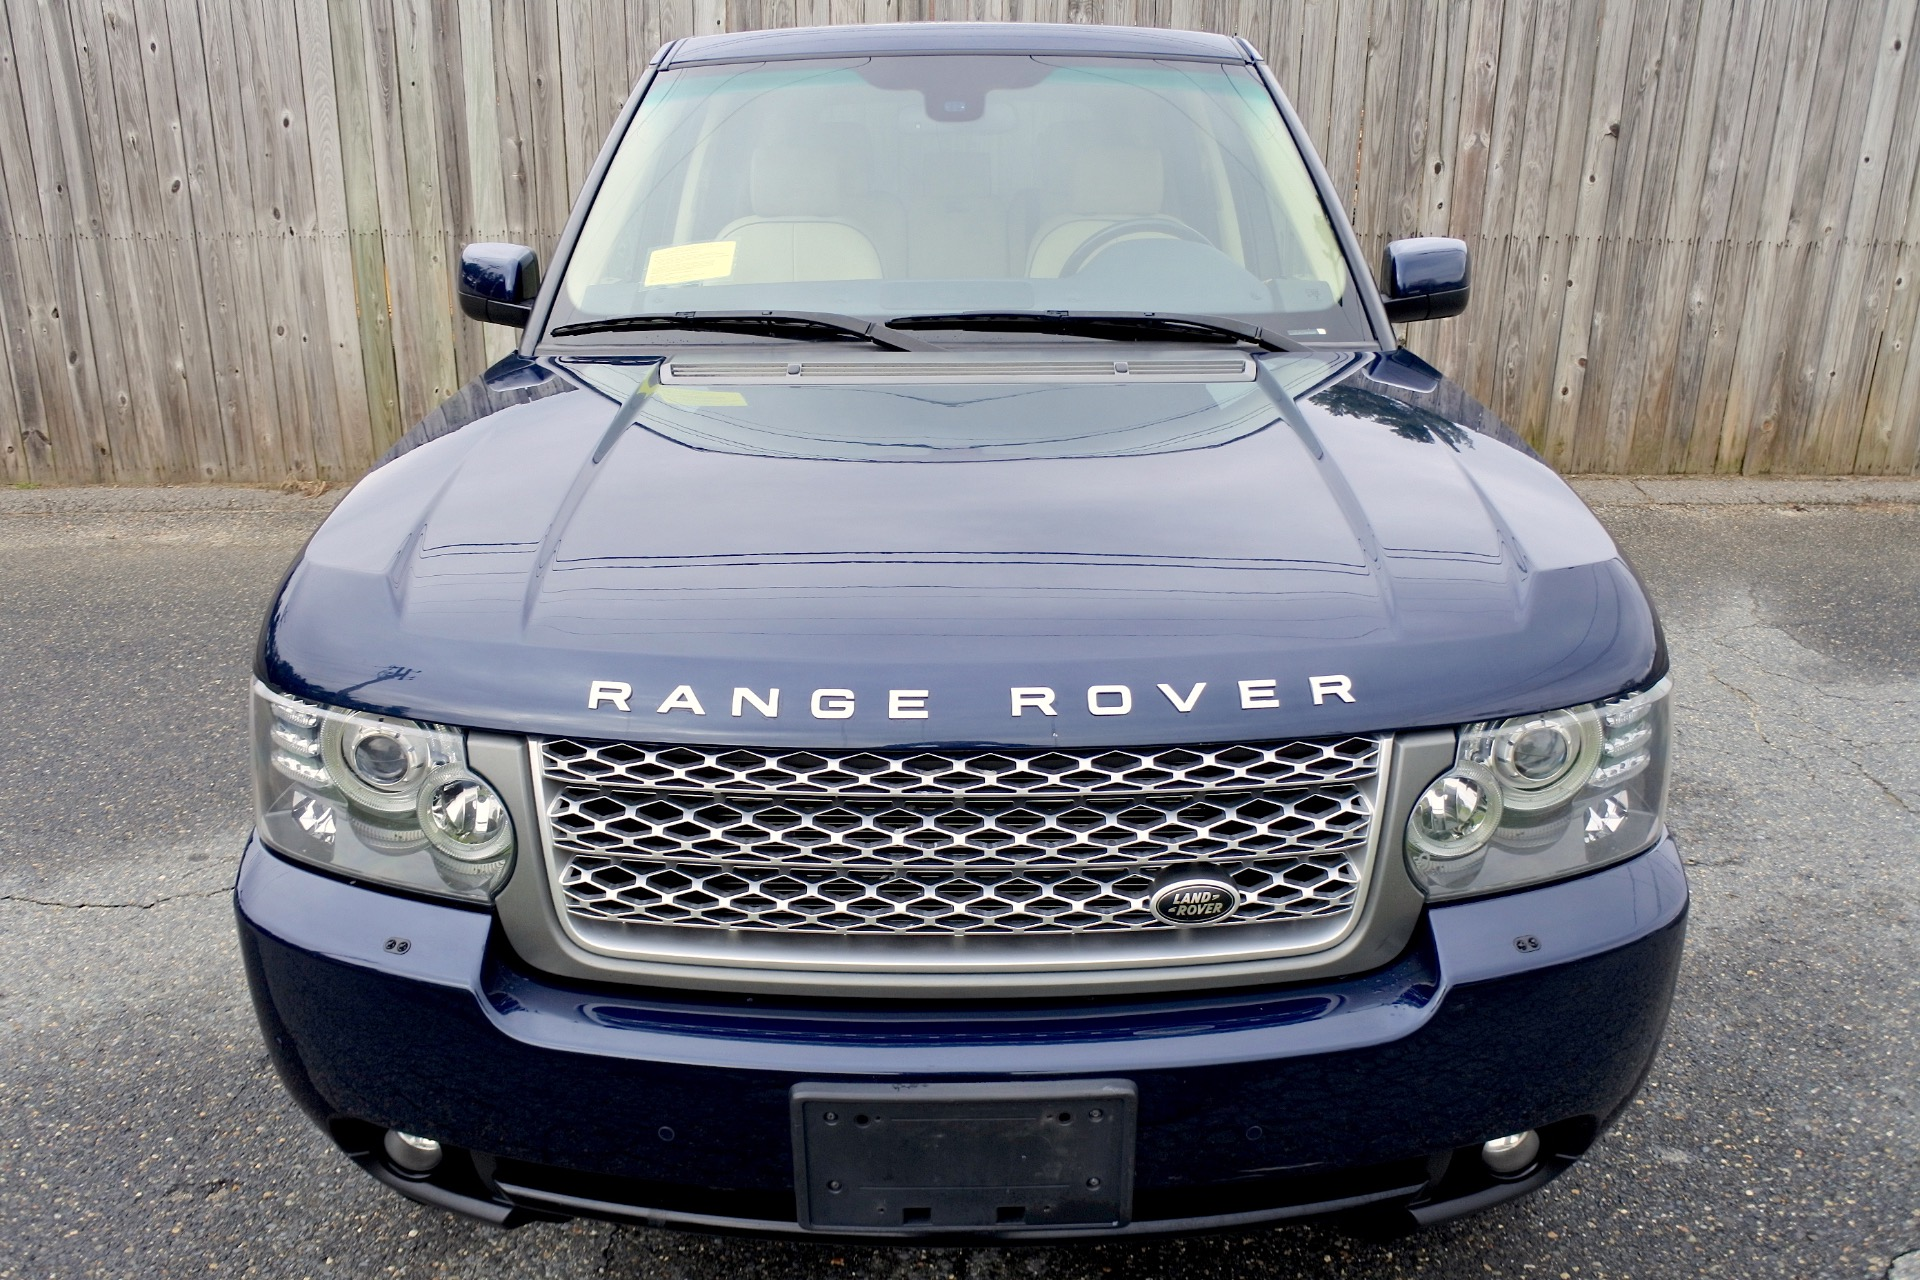 Used 2011 Land Rover Range Rover HSE Used 2011 Land Rover Range Rover HSE for sale  at Metro West Motorcars LLC in Shrewsbury MA 8